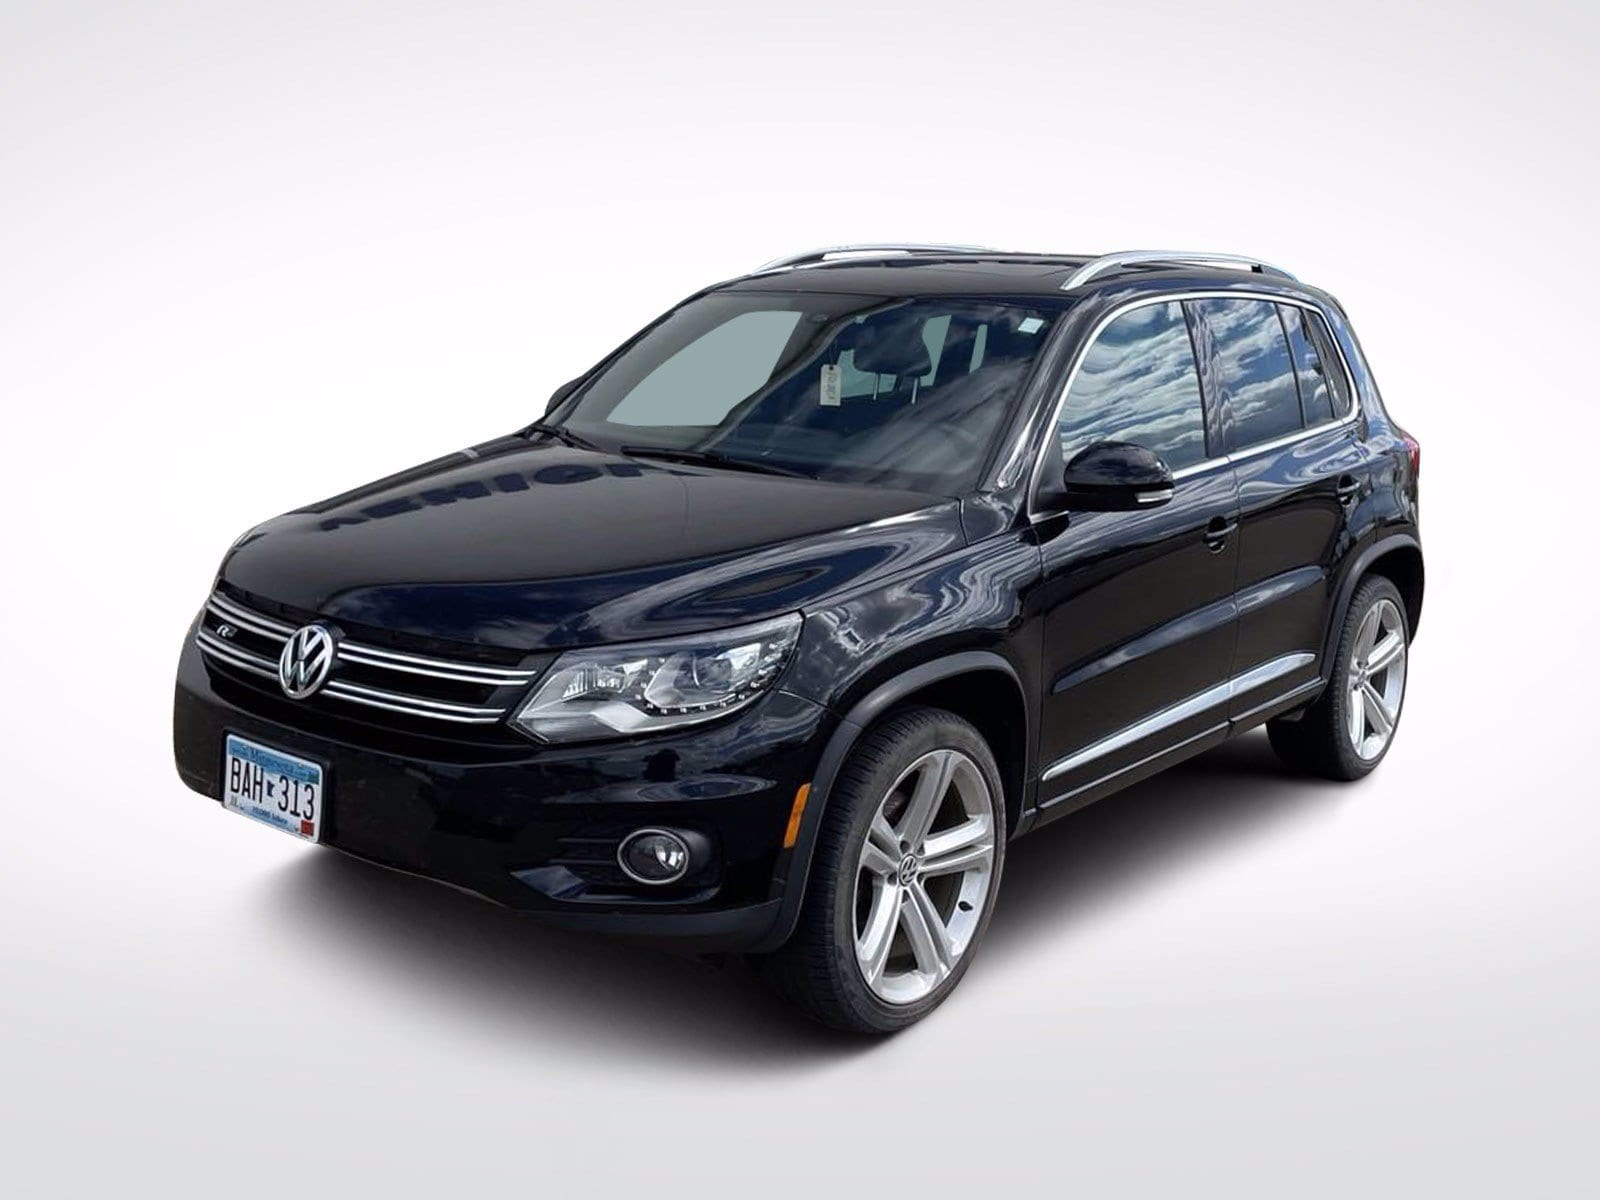 Used 2015 Volkswagen Tiguan R-Line with VIN WVGBV7AX3FW080894 for sale in Baxter, Minnesota